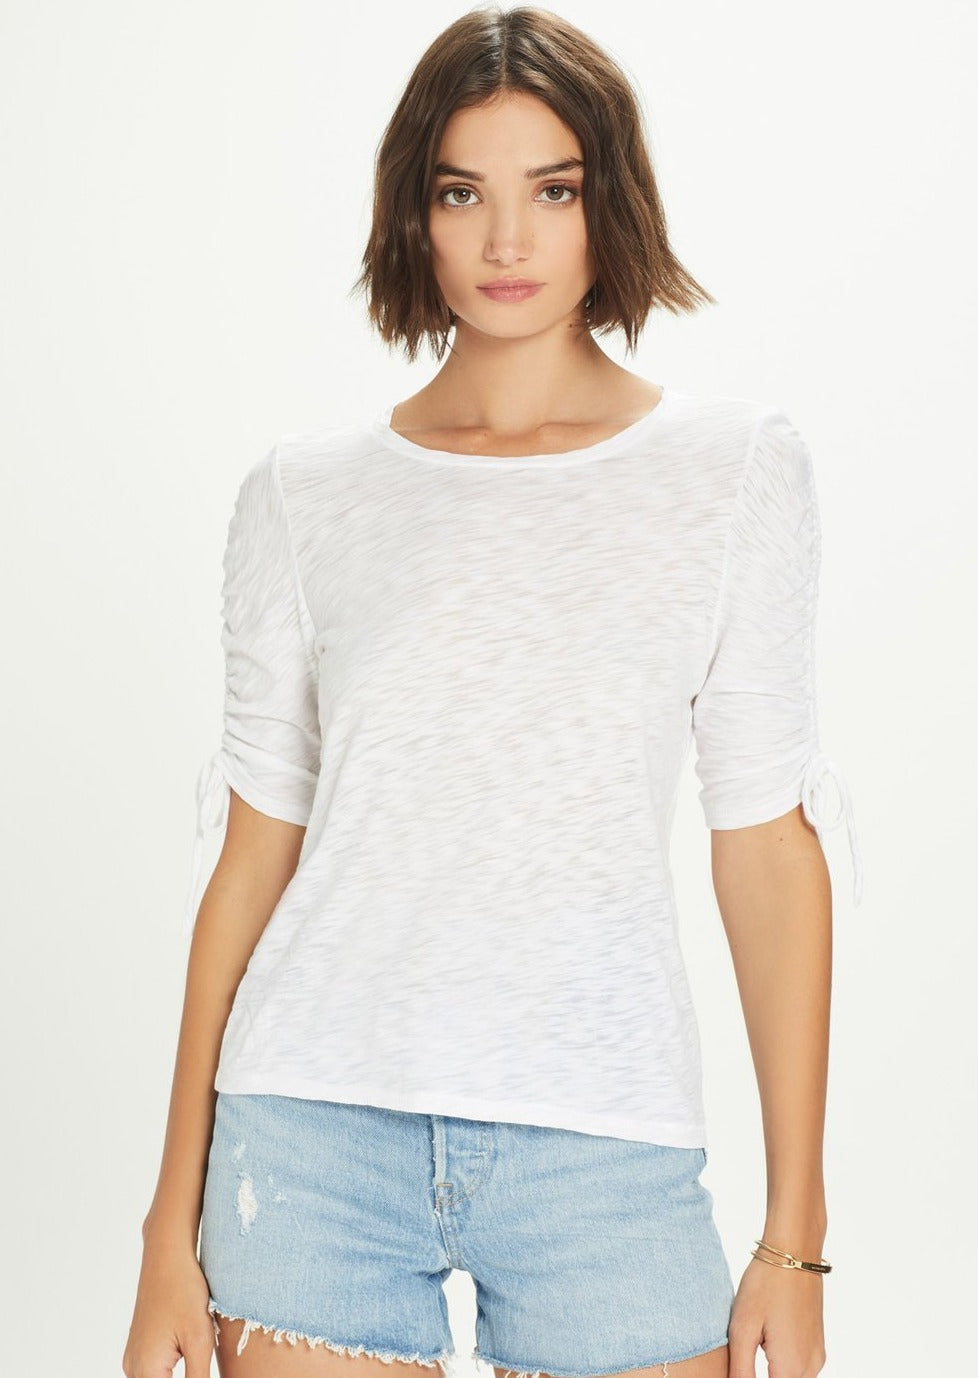 Ruched Sleeve Tee - White